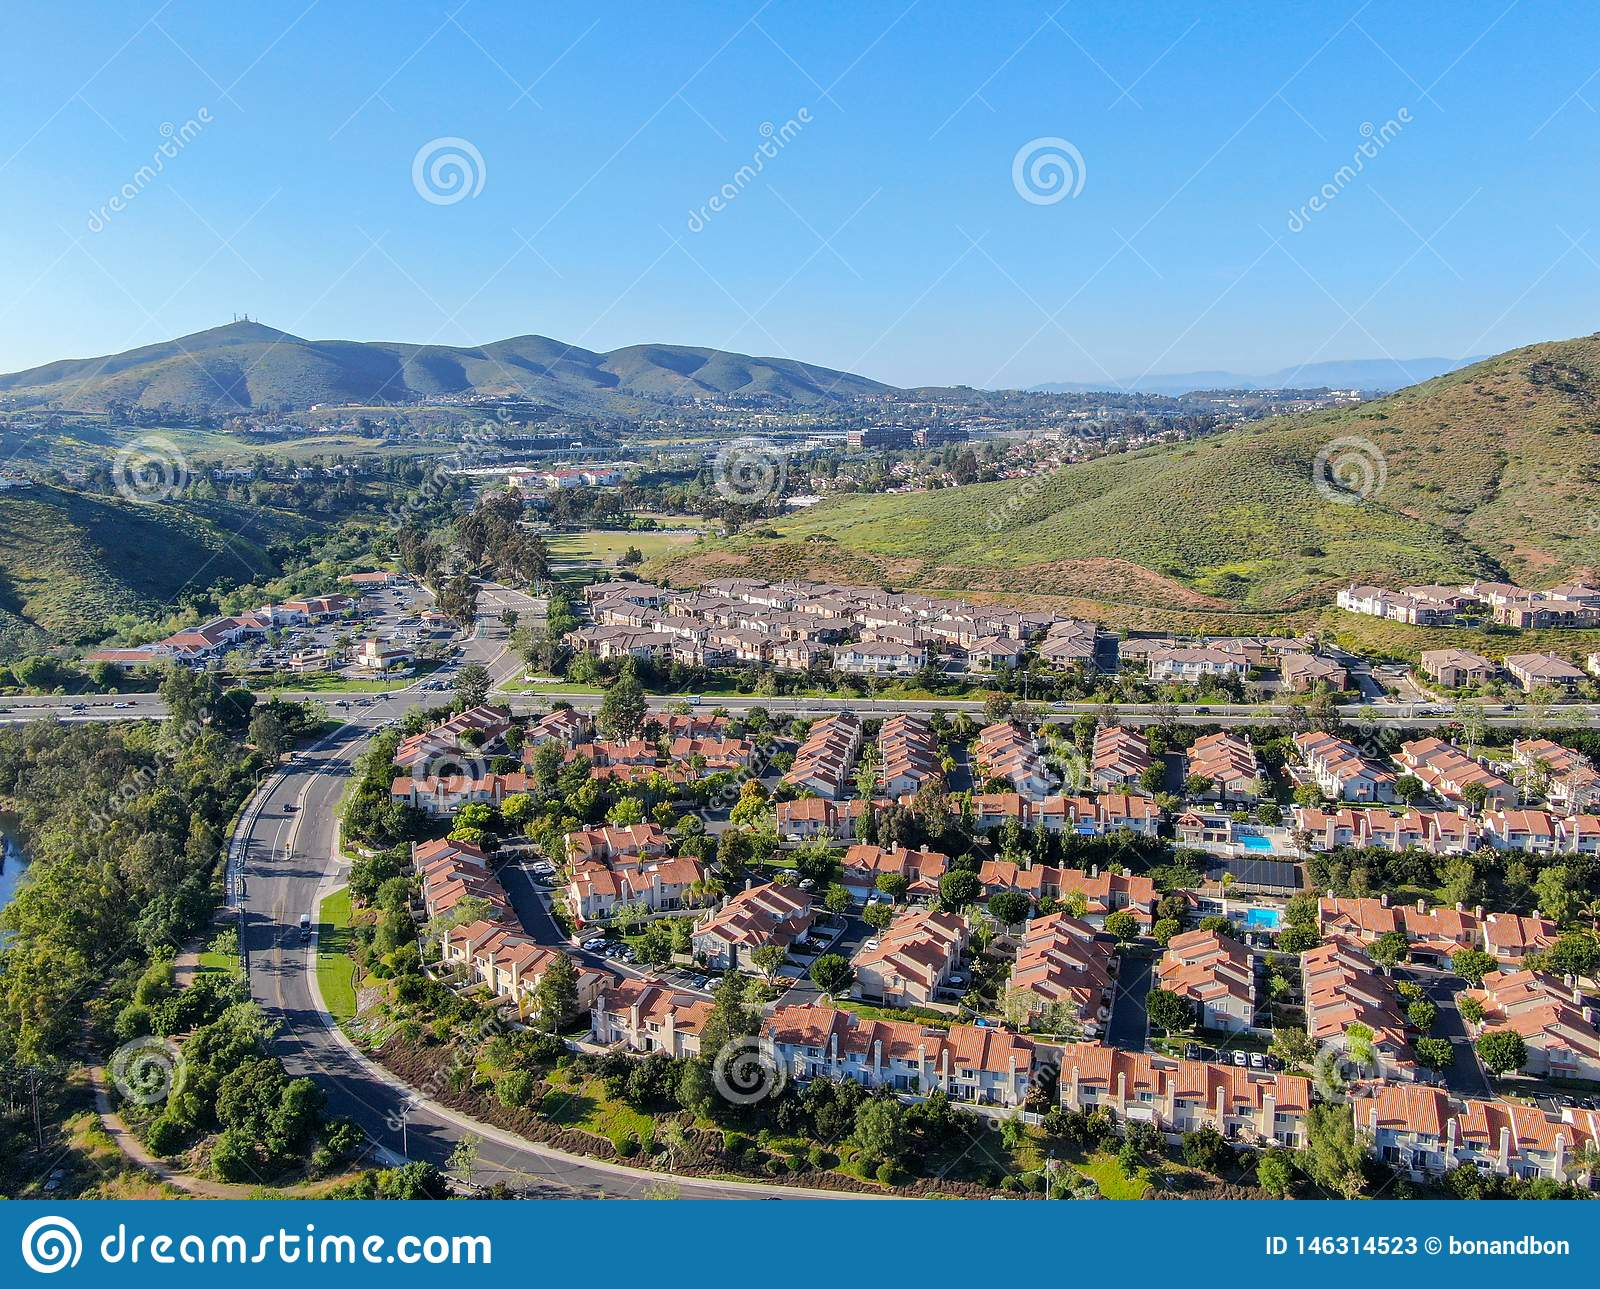 Aerial view suburban neighborhood with identical villas next to each other in the valley. San Diego, California,